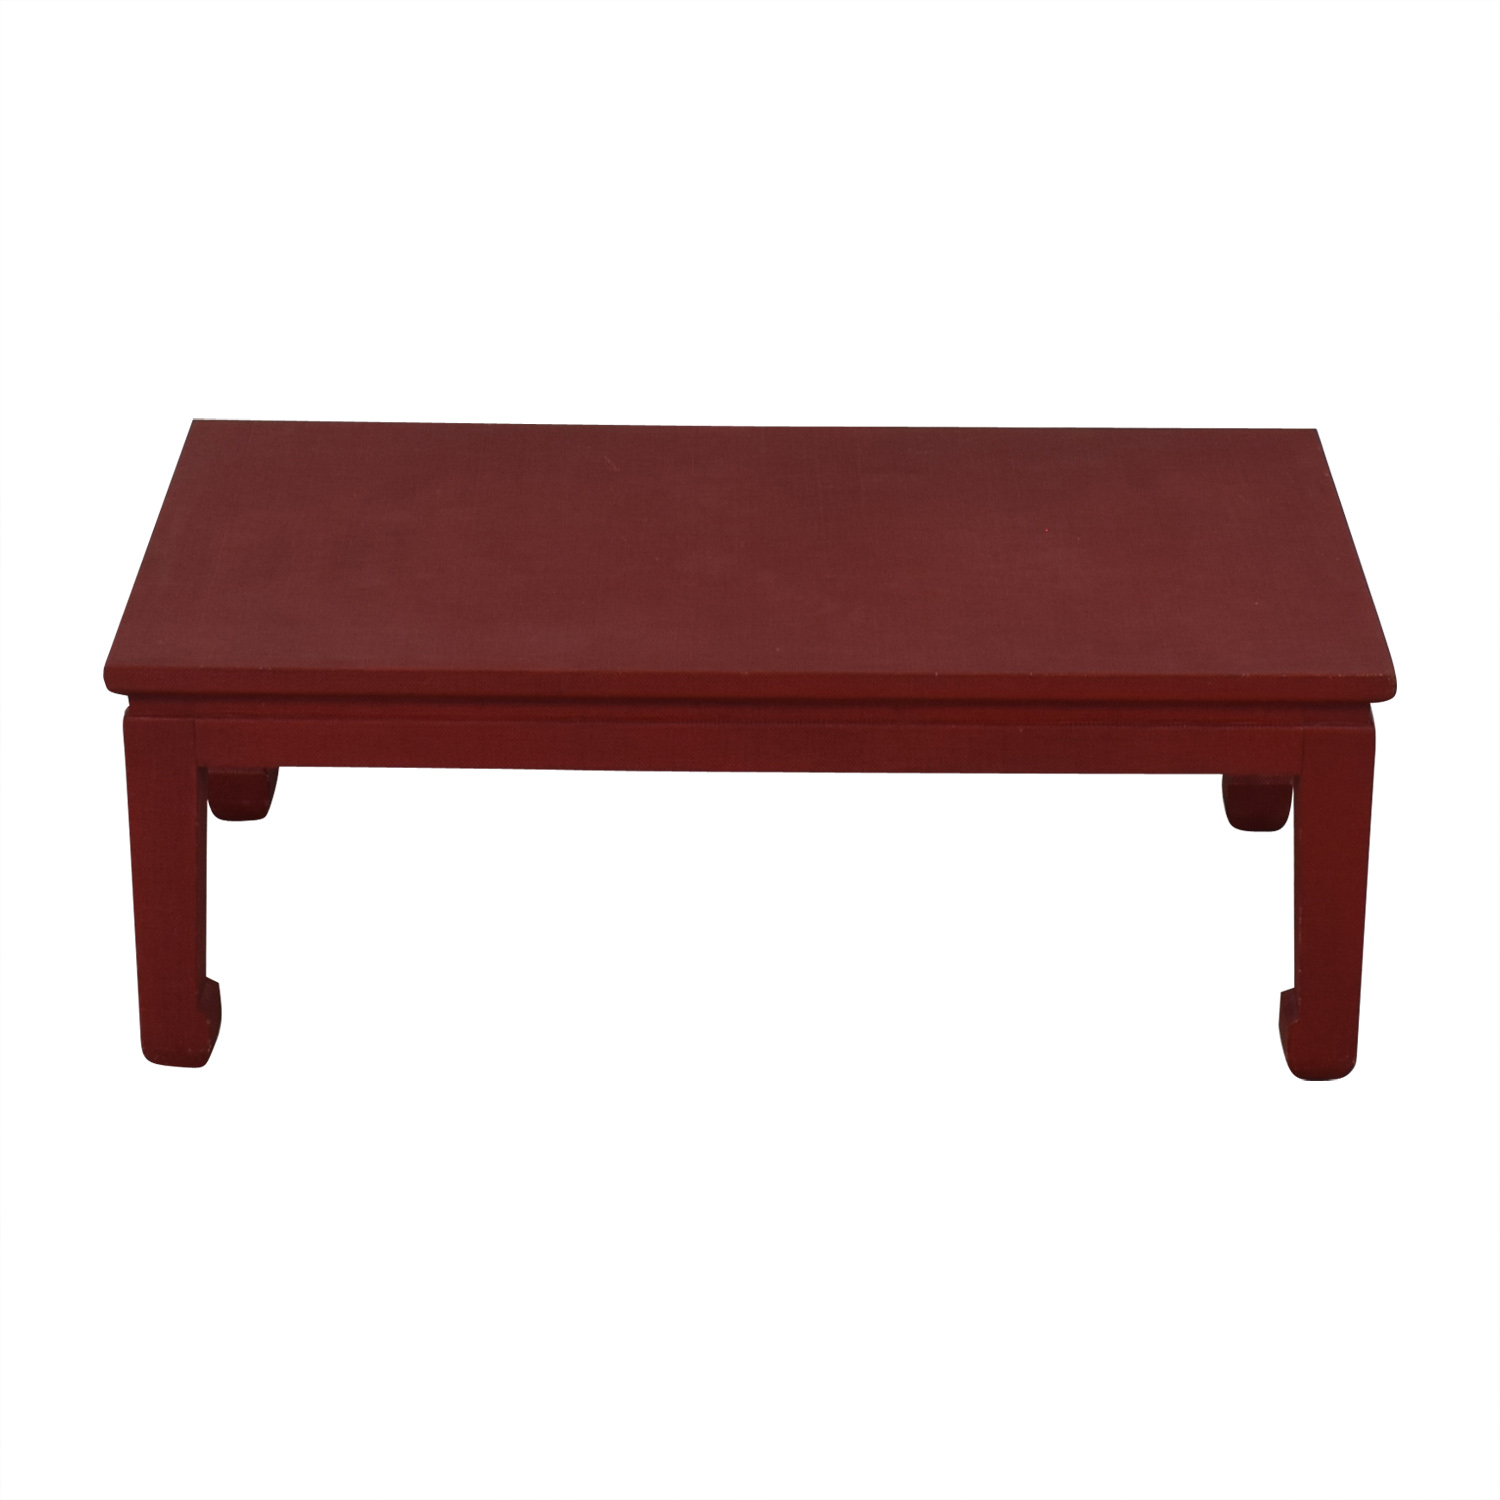 buy One King's Lane Asian Inspired Grass-Cloth Coffee Table in Red One Kings Lane